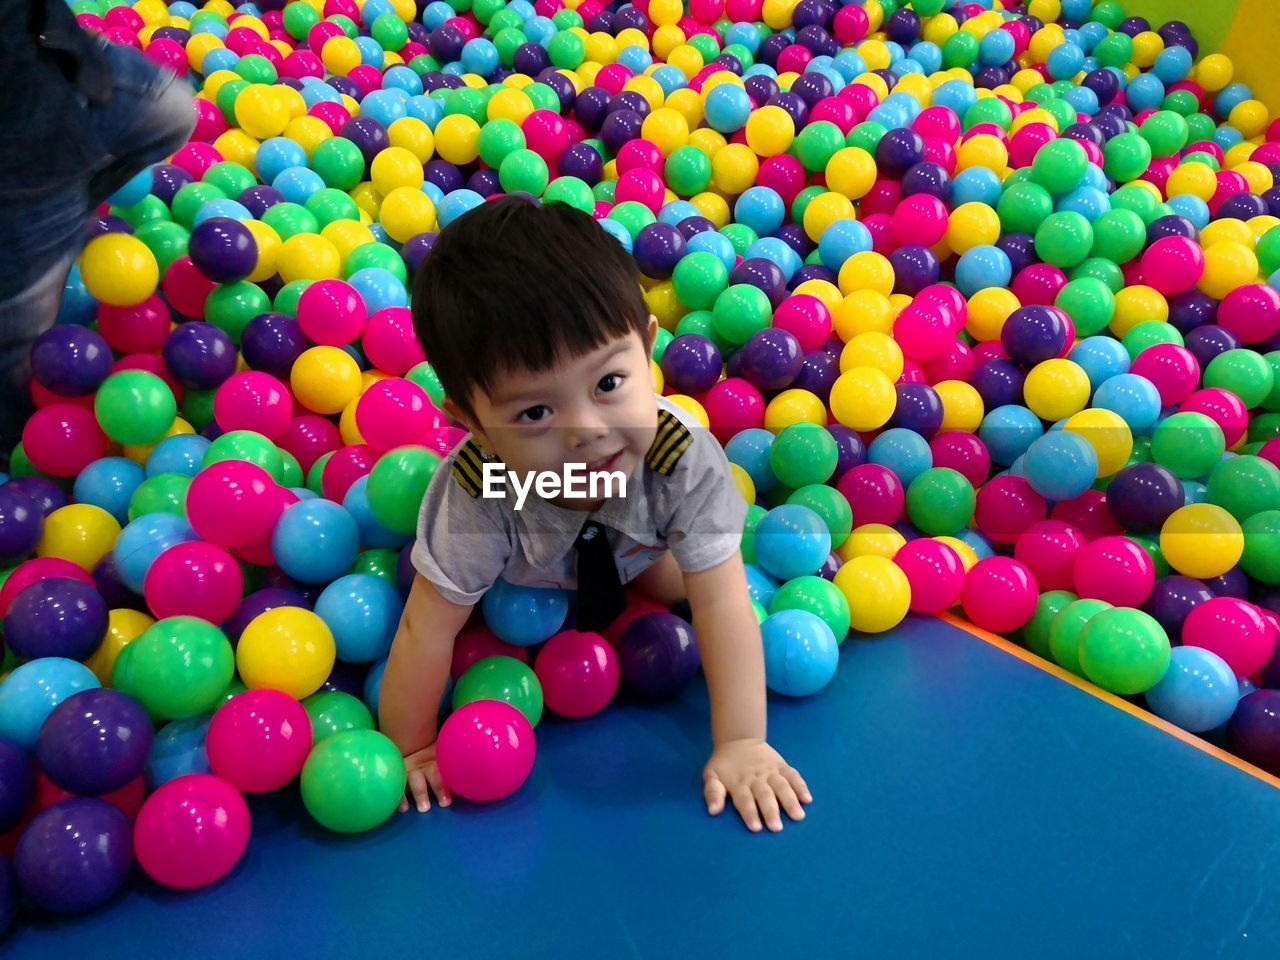 Cute smiling boy looking away while playing with colorful balls